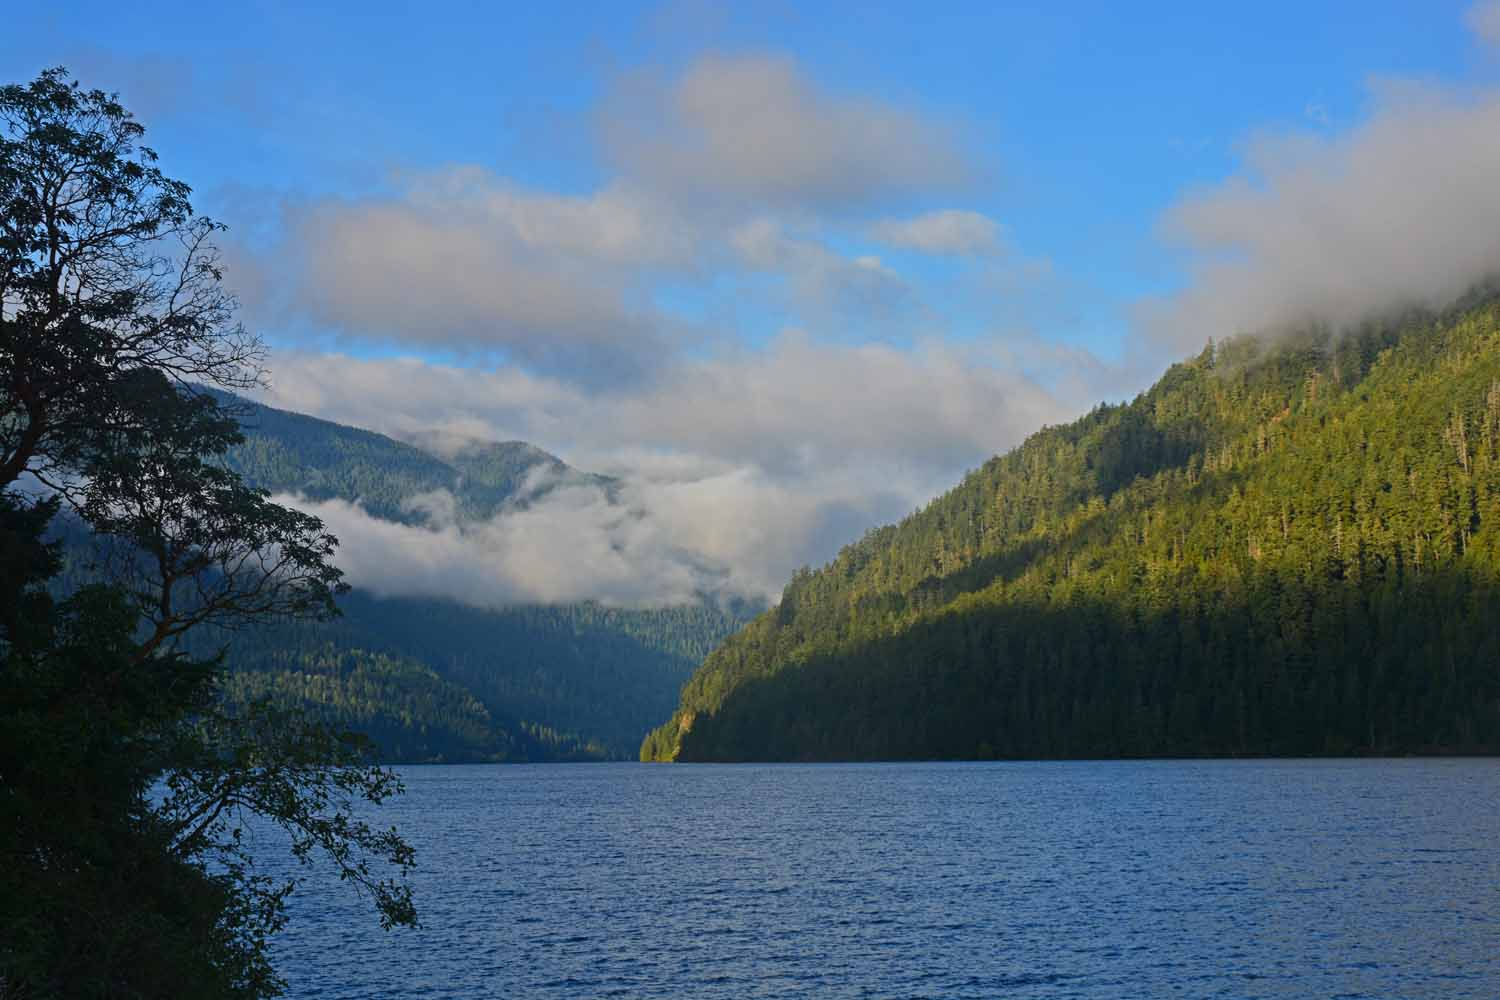 Another picture of Lake Crescent at the end of the day on our way back to base camp.